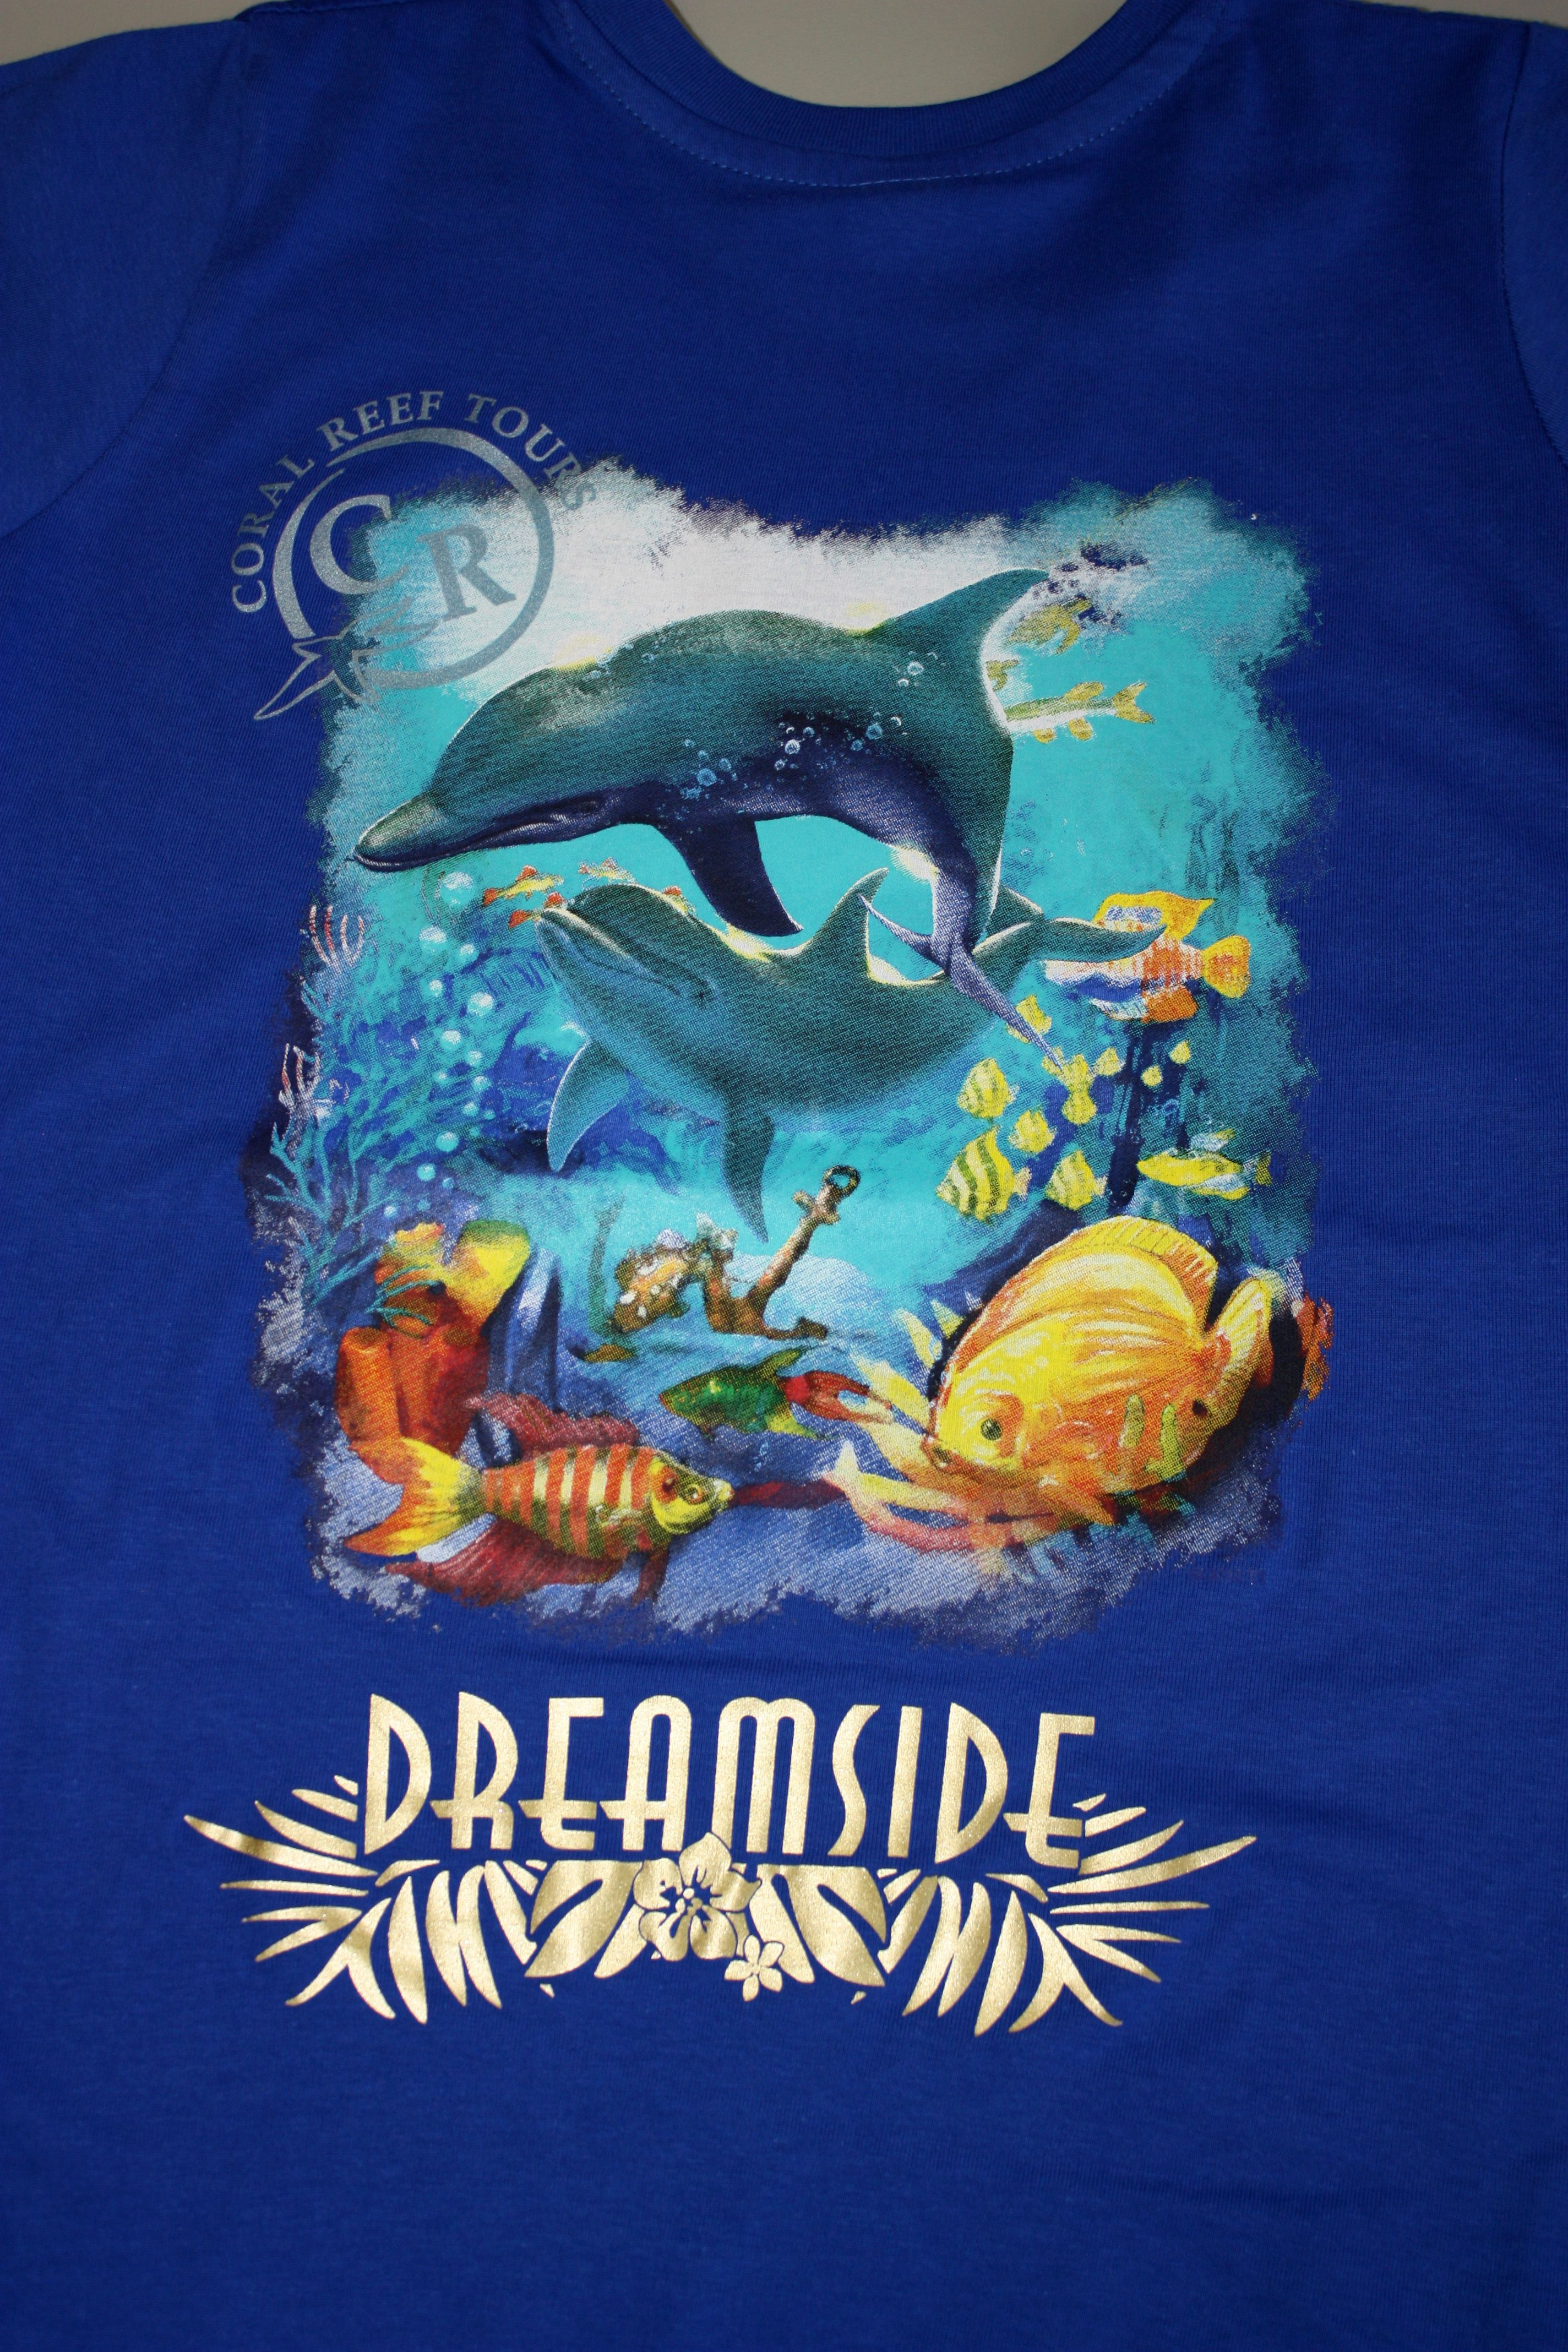 Resort And Coral Reef T Shirt Design With Dolphins And Fish Res 2 Qal 262 Qal 377 More Ideas At Easyprints Com Custom App Custom Clothes Design Custom Travel